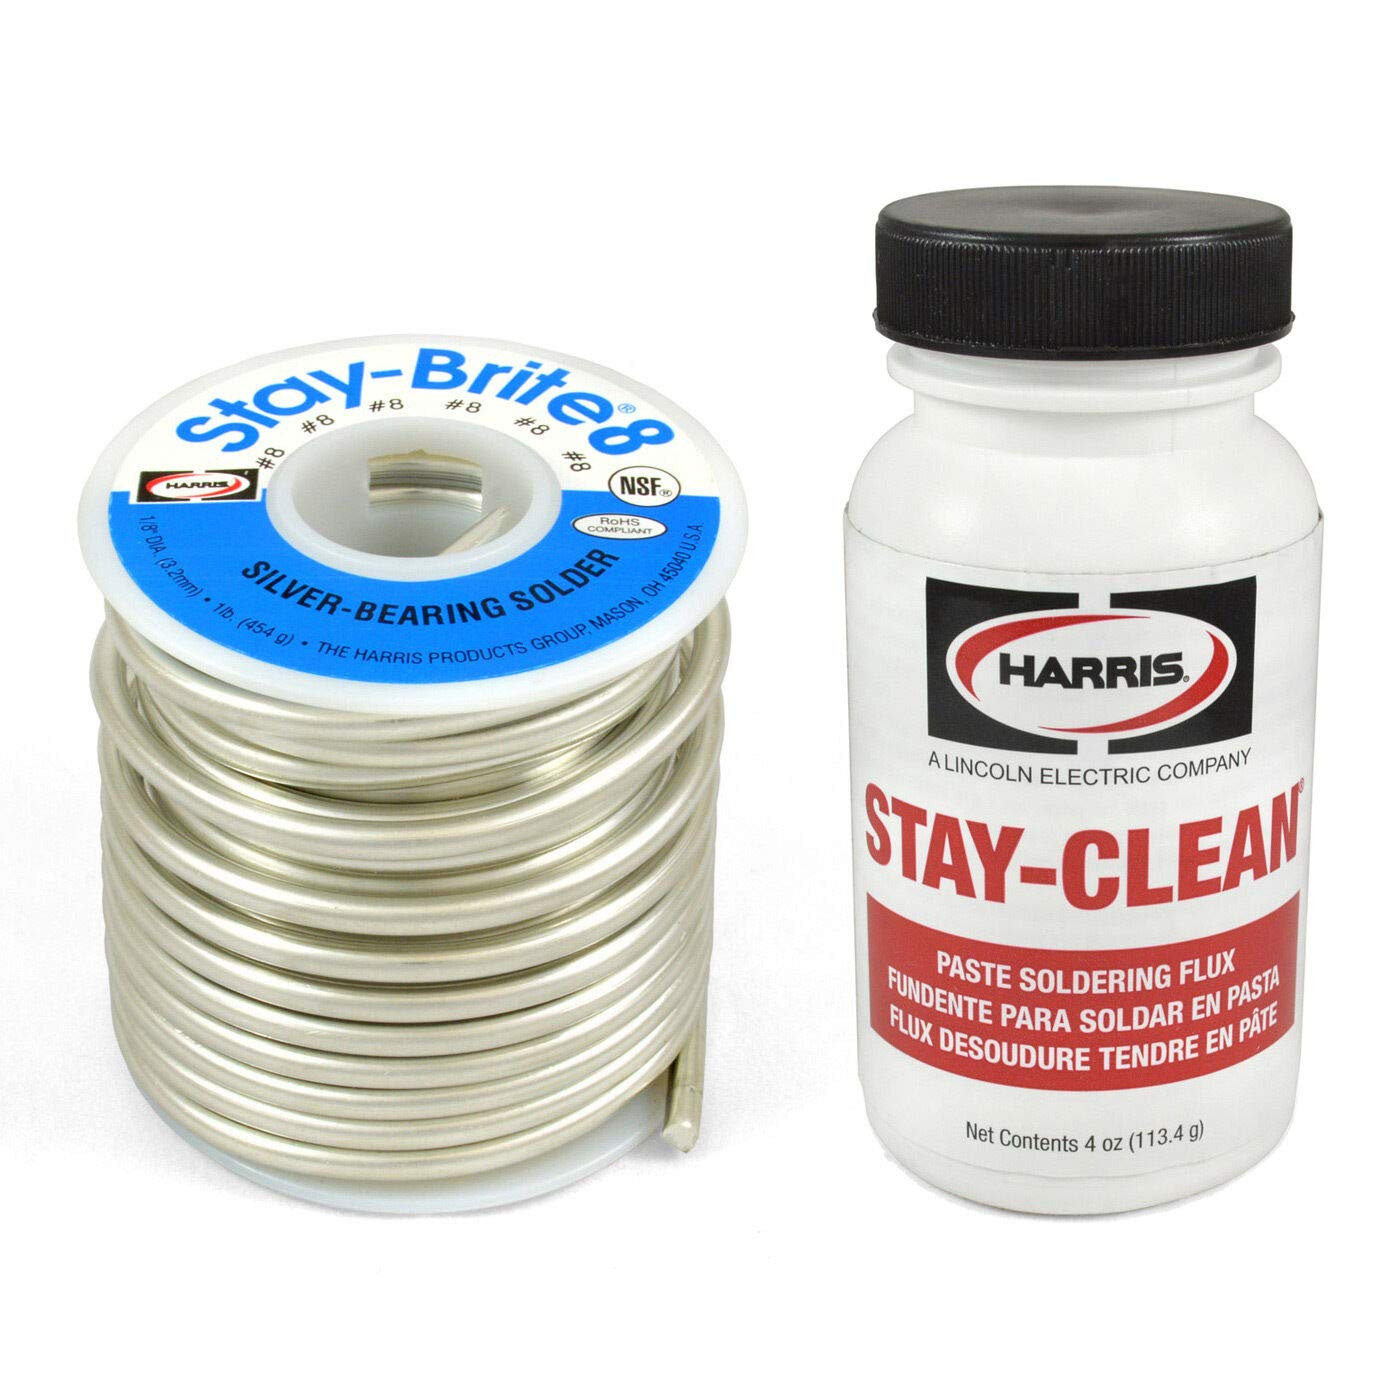 Combo Set Harris Solder Kit SB861 & SCPF4 - Stay-Brite #8 Silver Bearing Solder with Flux